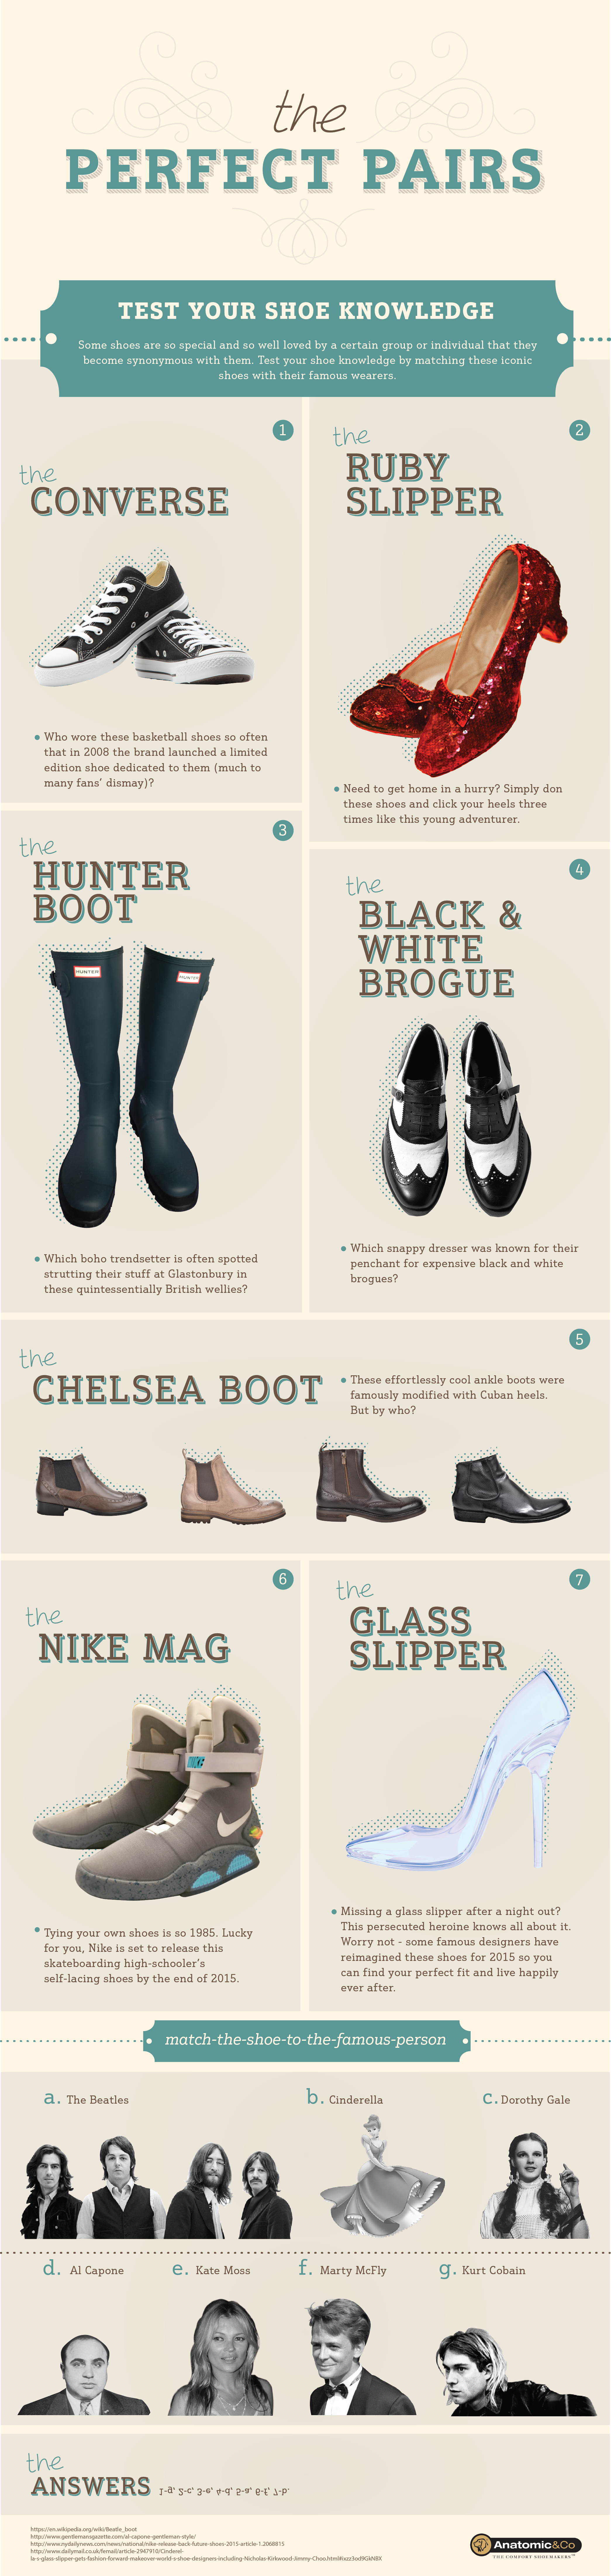 Anatomic shoes infographic content marketing